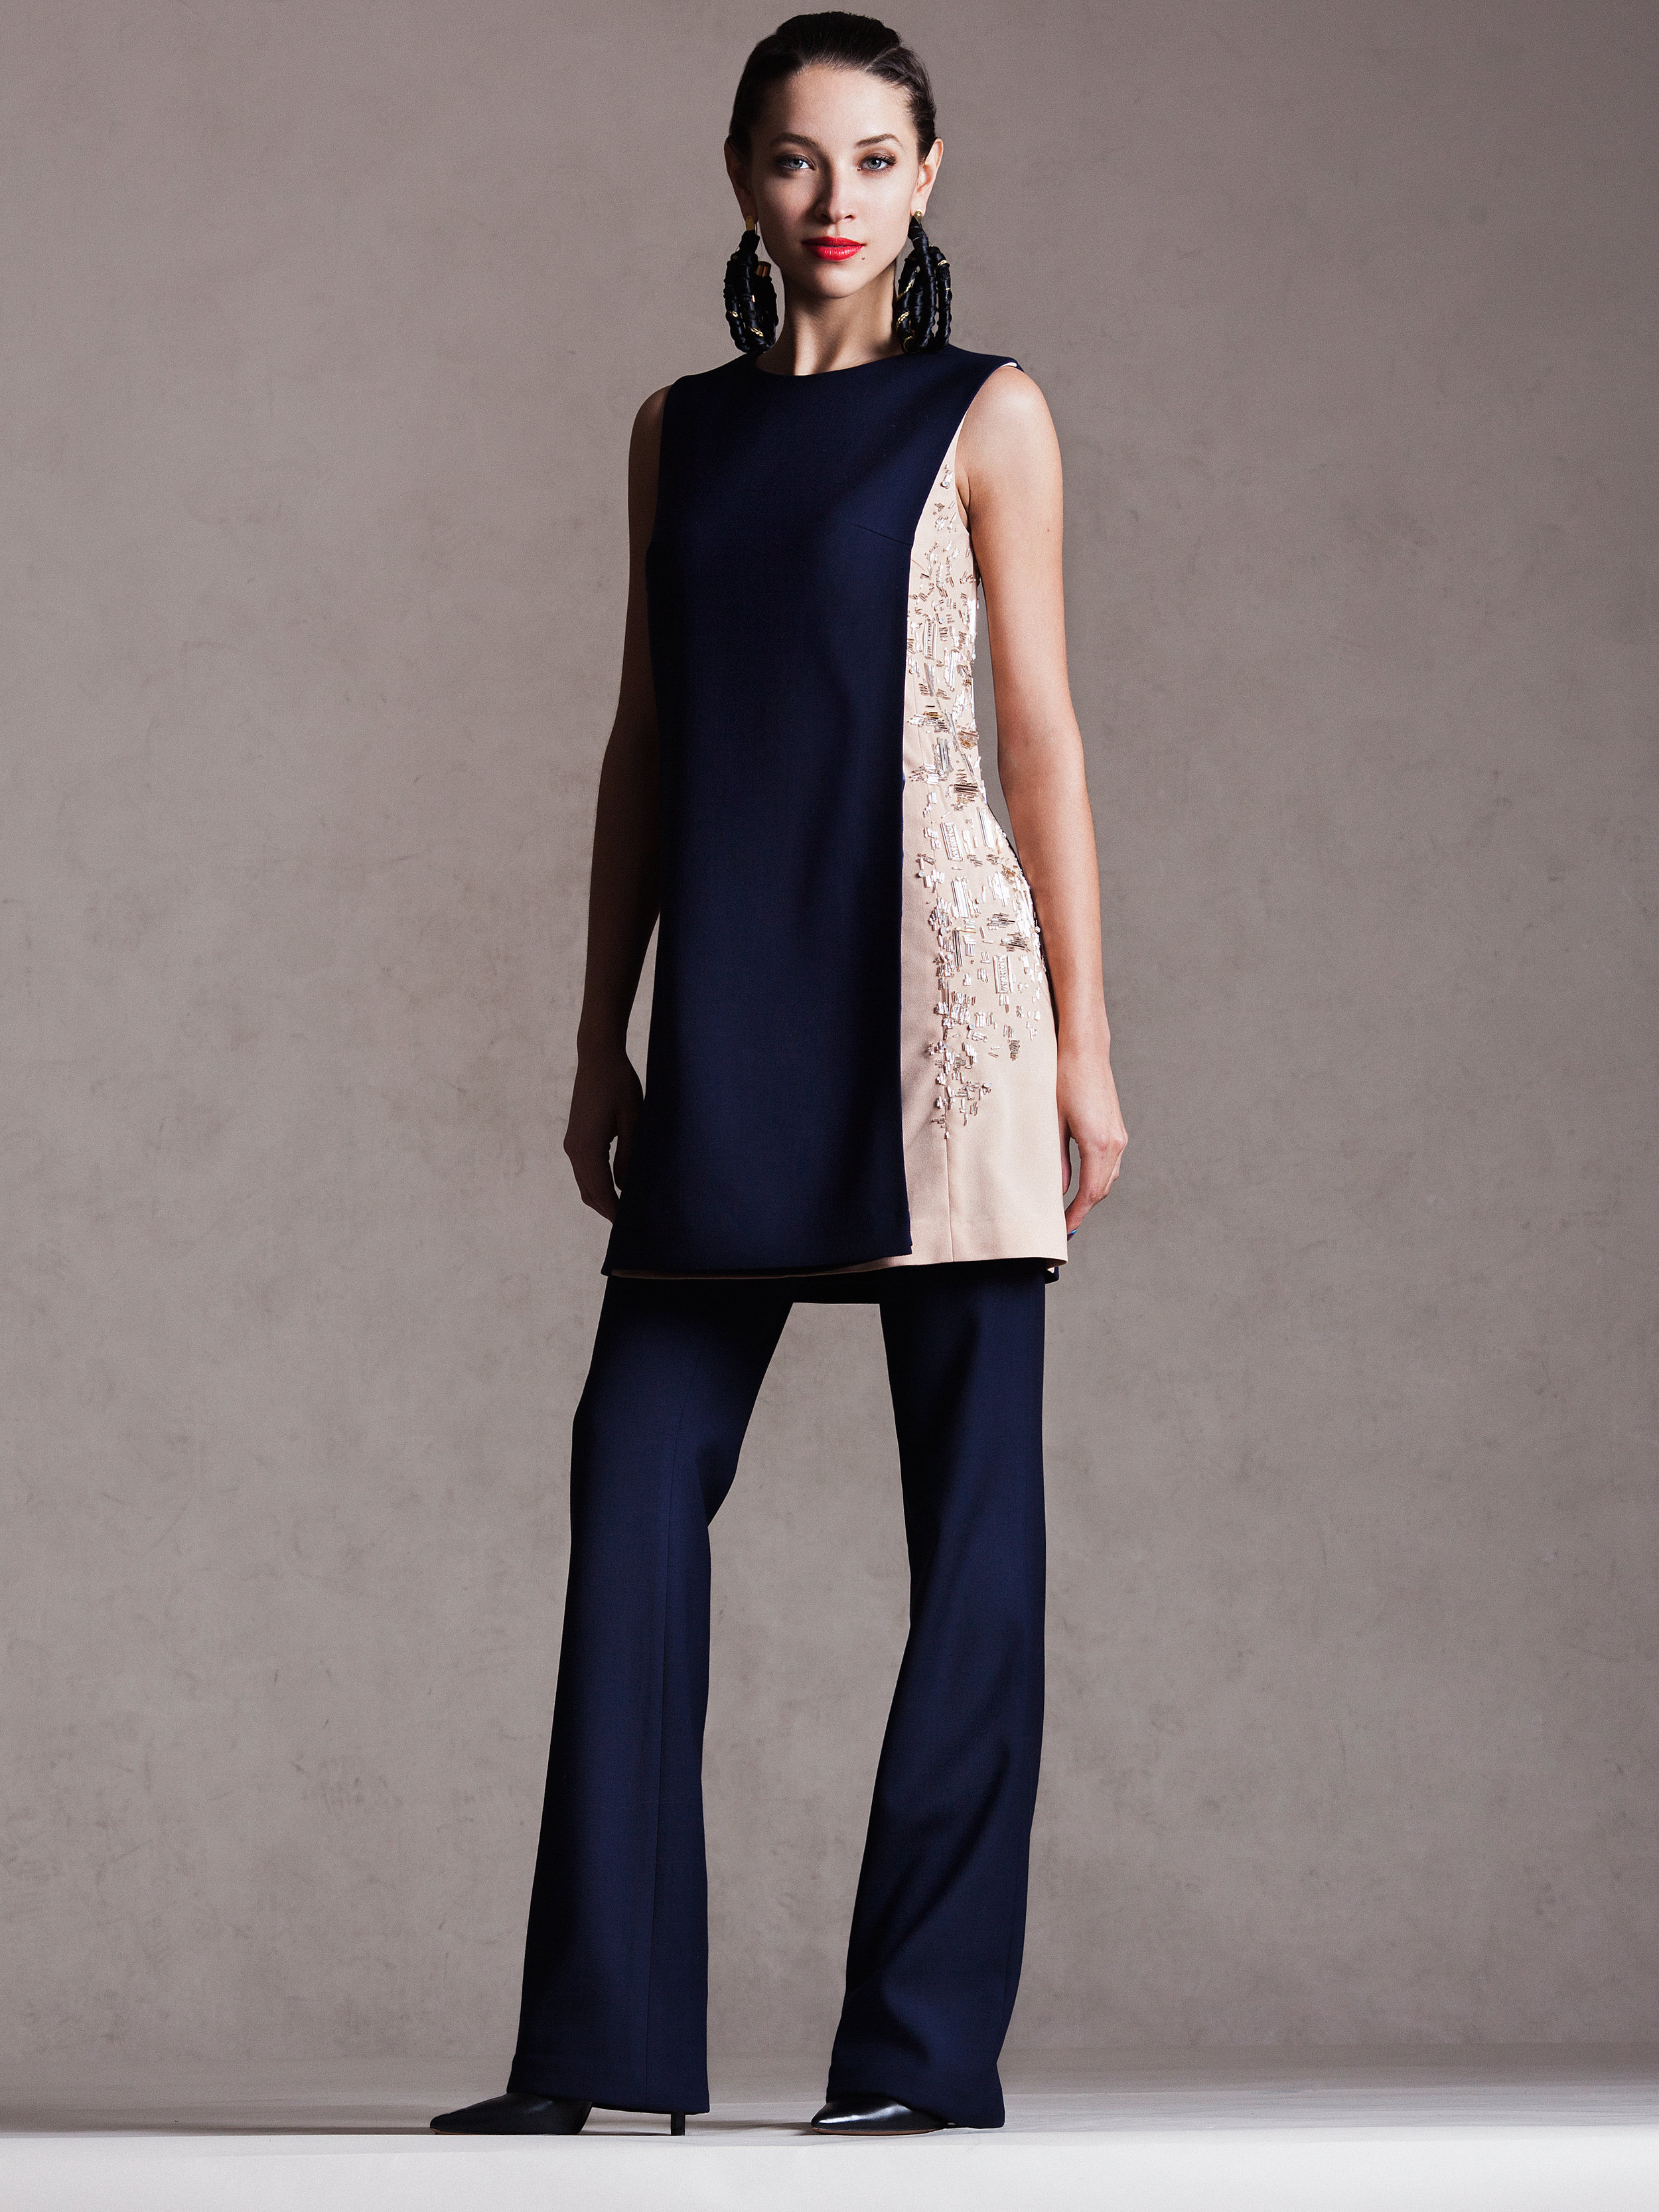 Lucian-Matis-Lookbook-20150204-006c.jpg